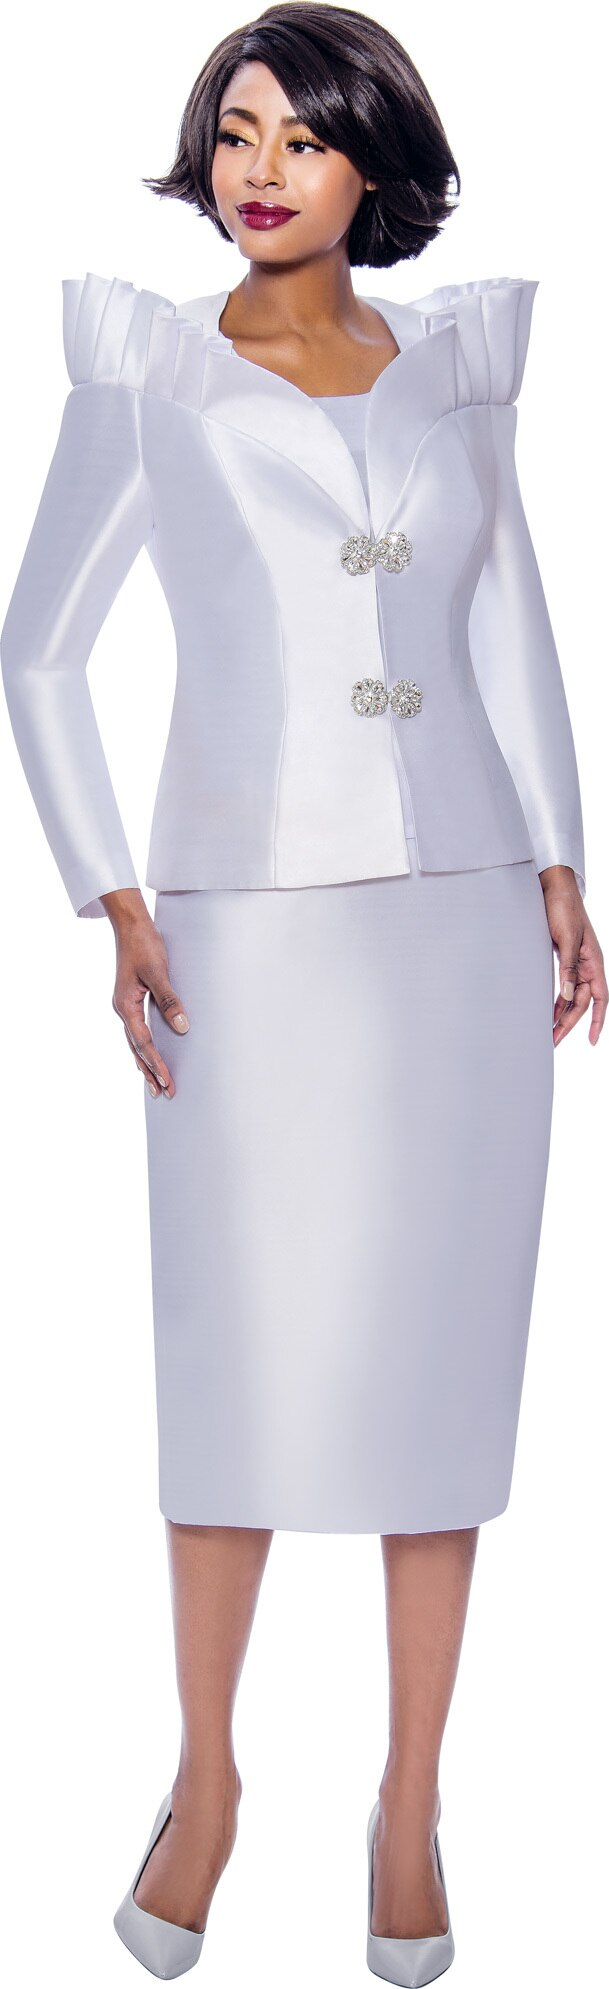 Terramina Suit 7811-White - Church Suits For Less